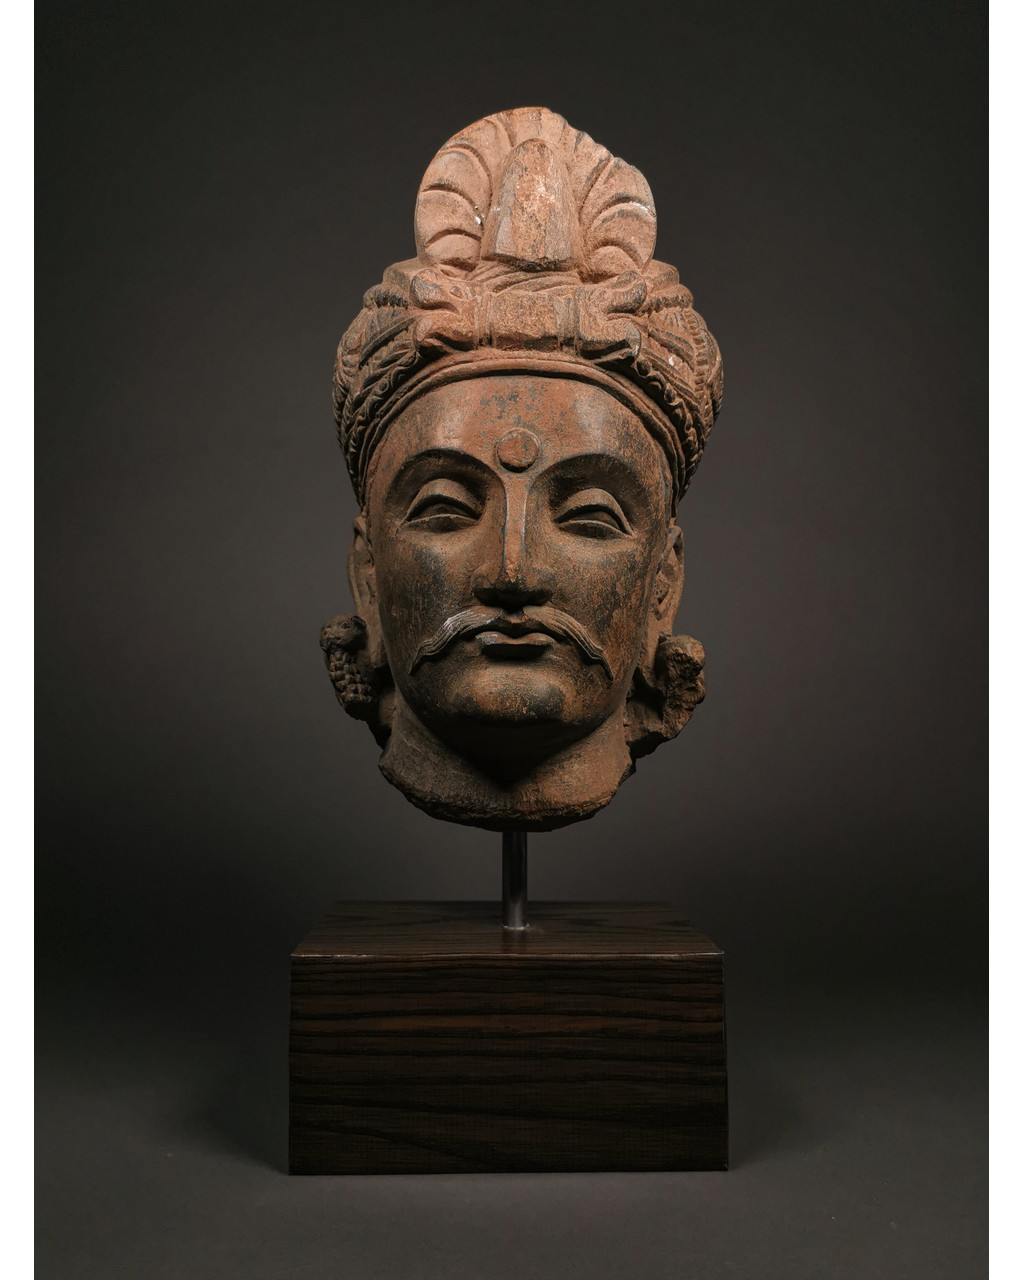 Lot 396 - SUPERB GANDHARA HEAD OF BUDDHA